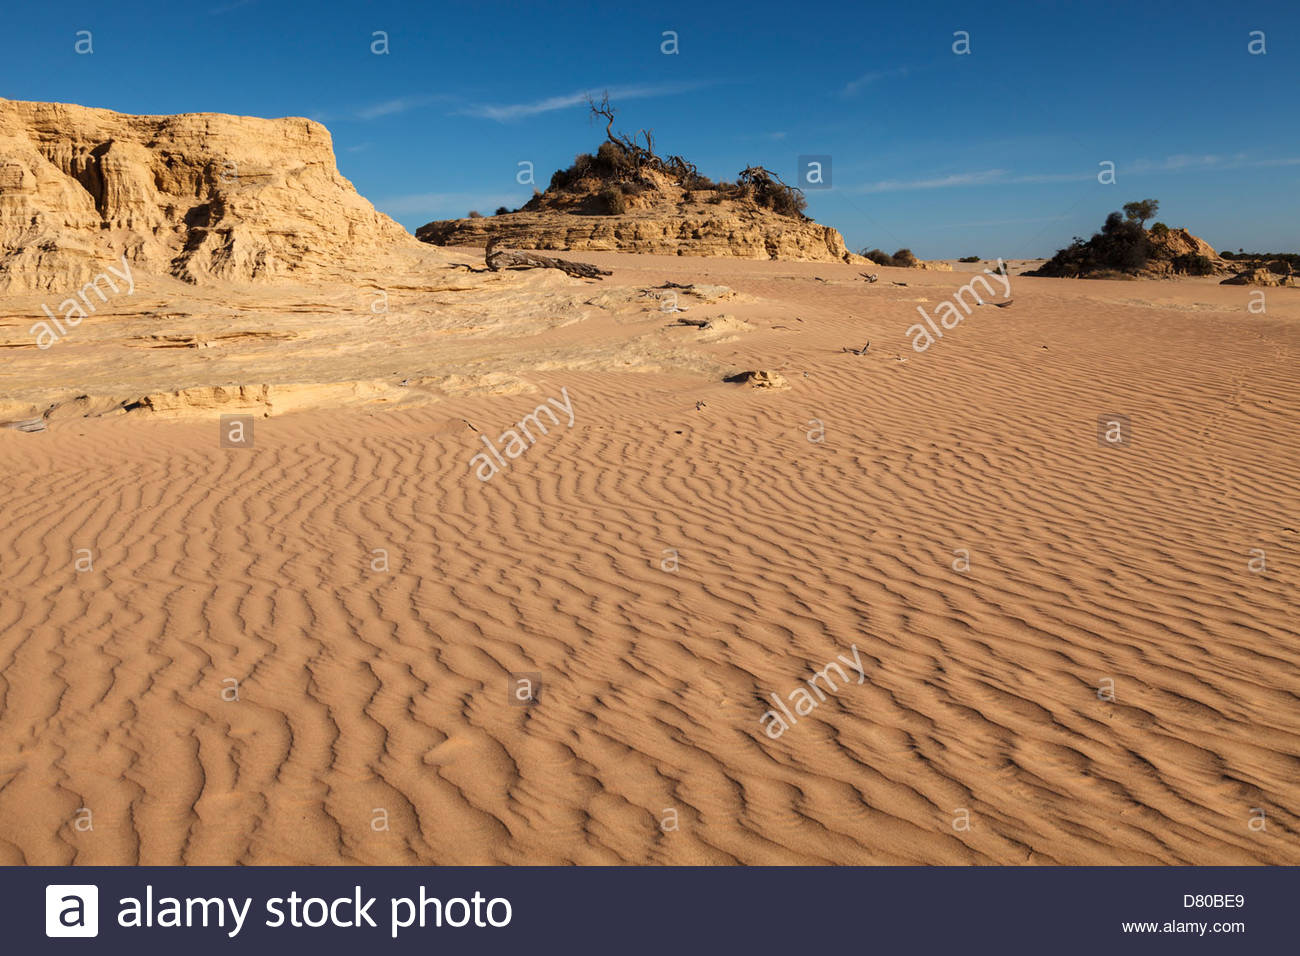 On The Great Wall Of China Mungo National Park Outback New South